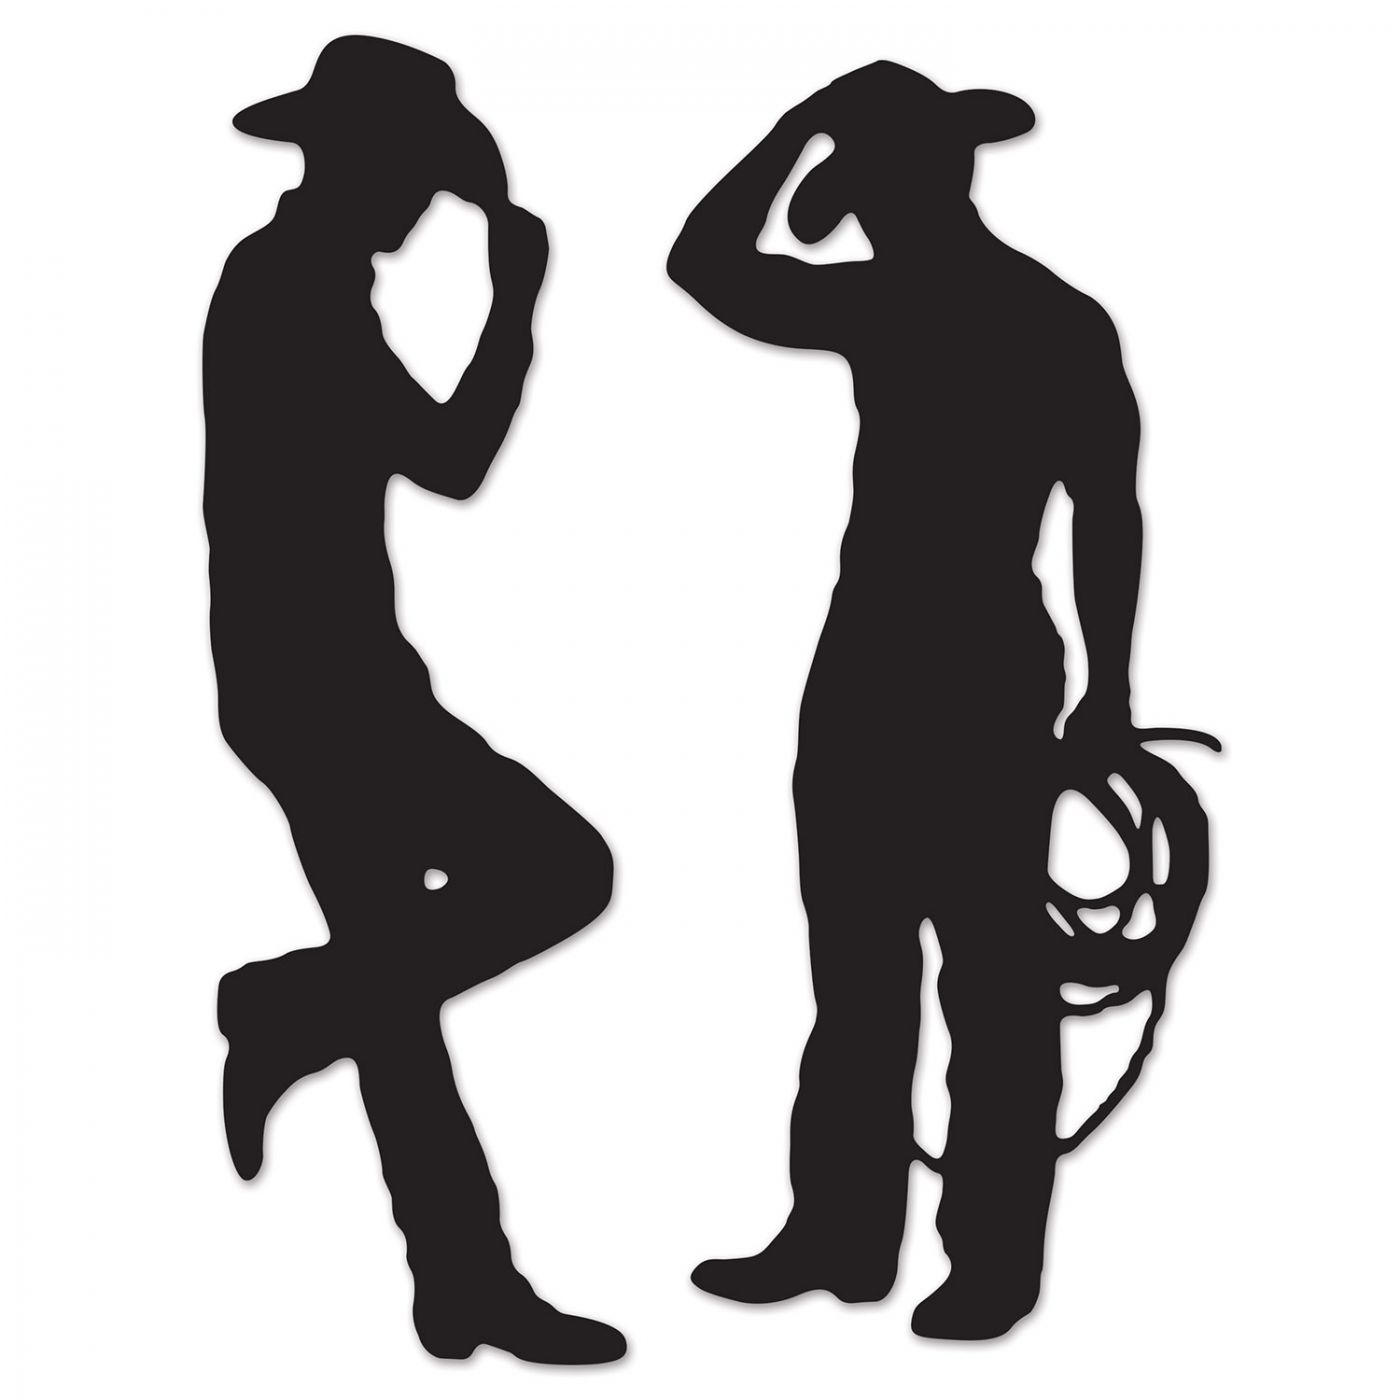 Cowboy Silhouettes image